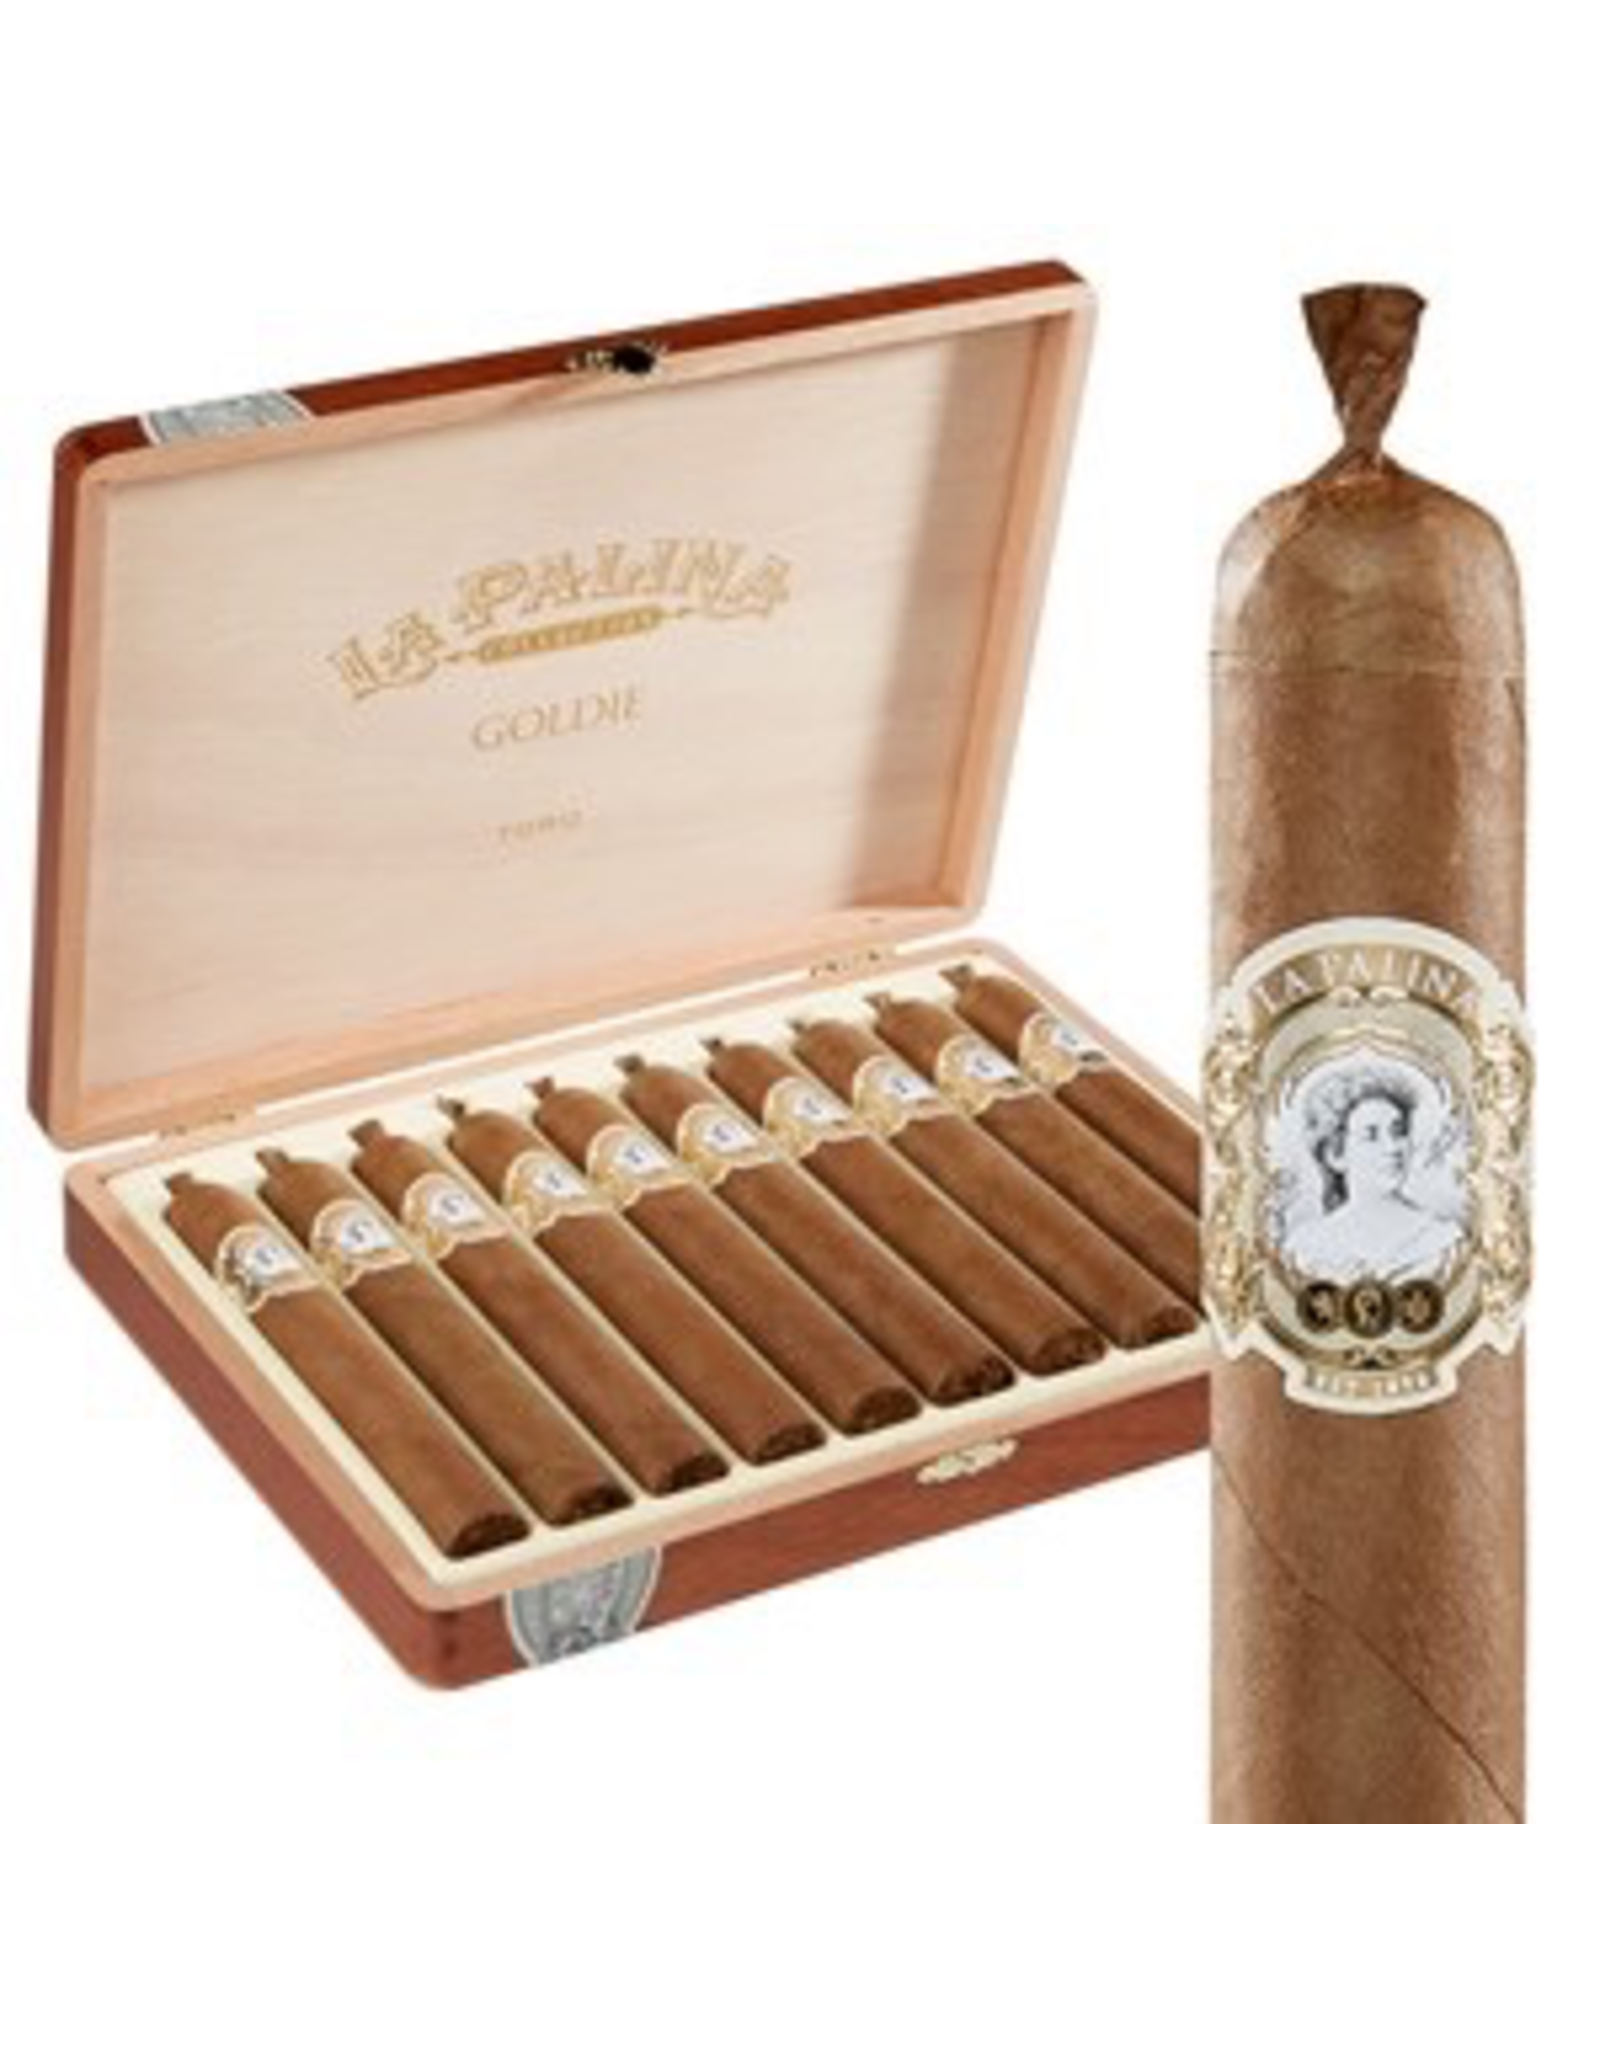 Cigars CIGAR - 2018 La Palina Goldie TORO 52x5.8, Limited to 1500 Boxes